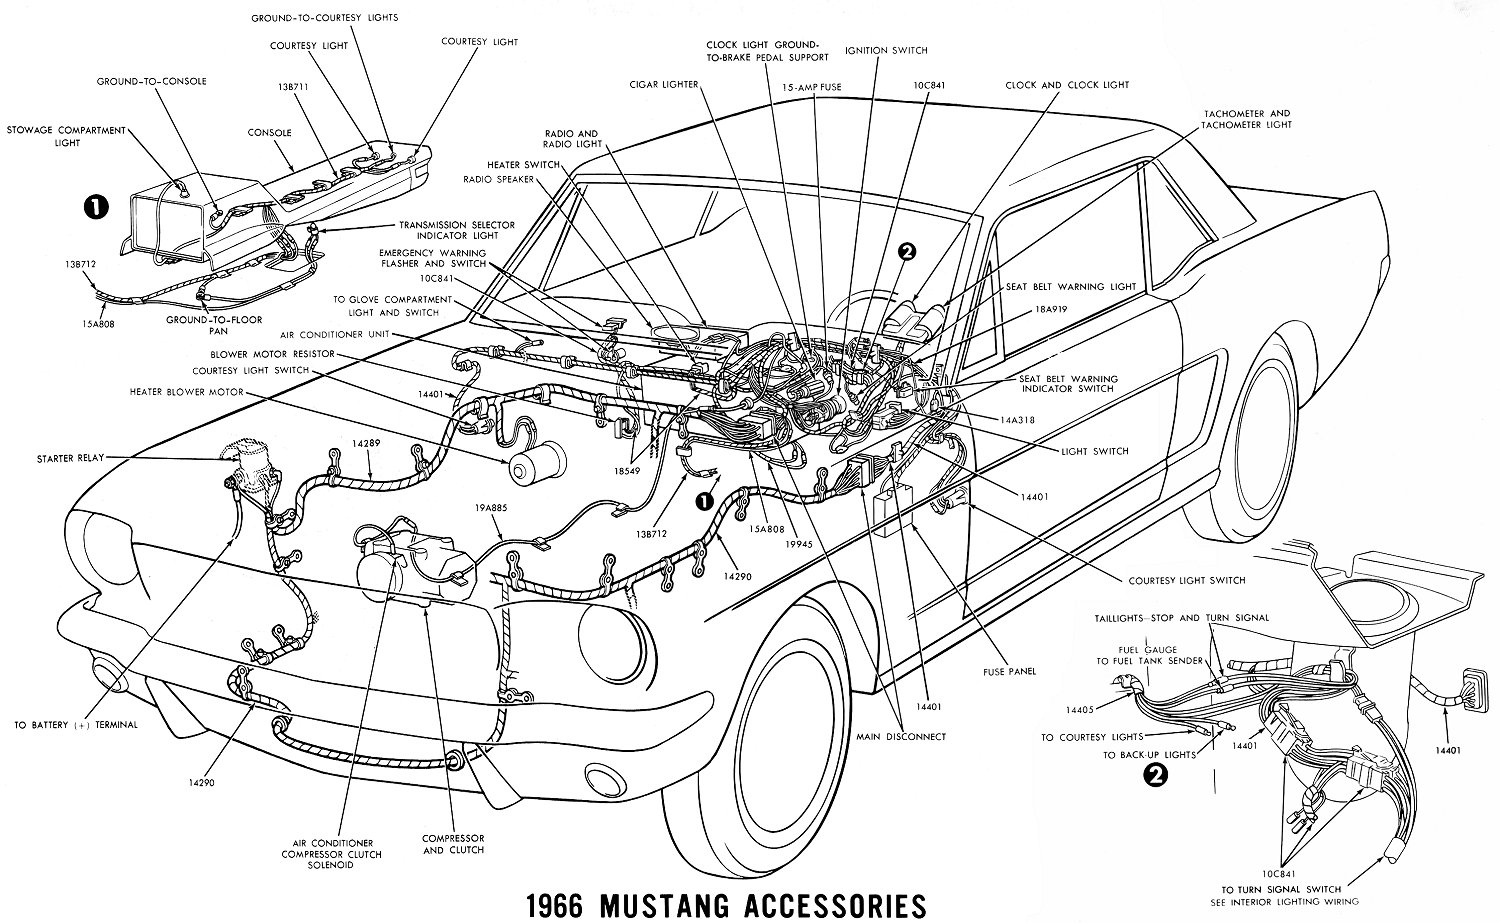 1966 mustang dash light wiring diagram business process flow symbols diagrams average joe restoration